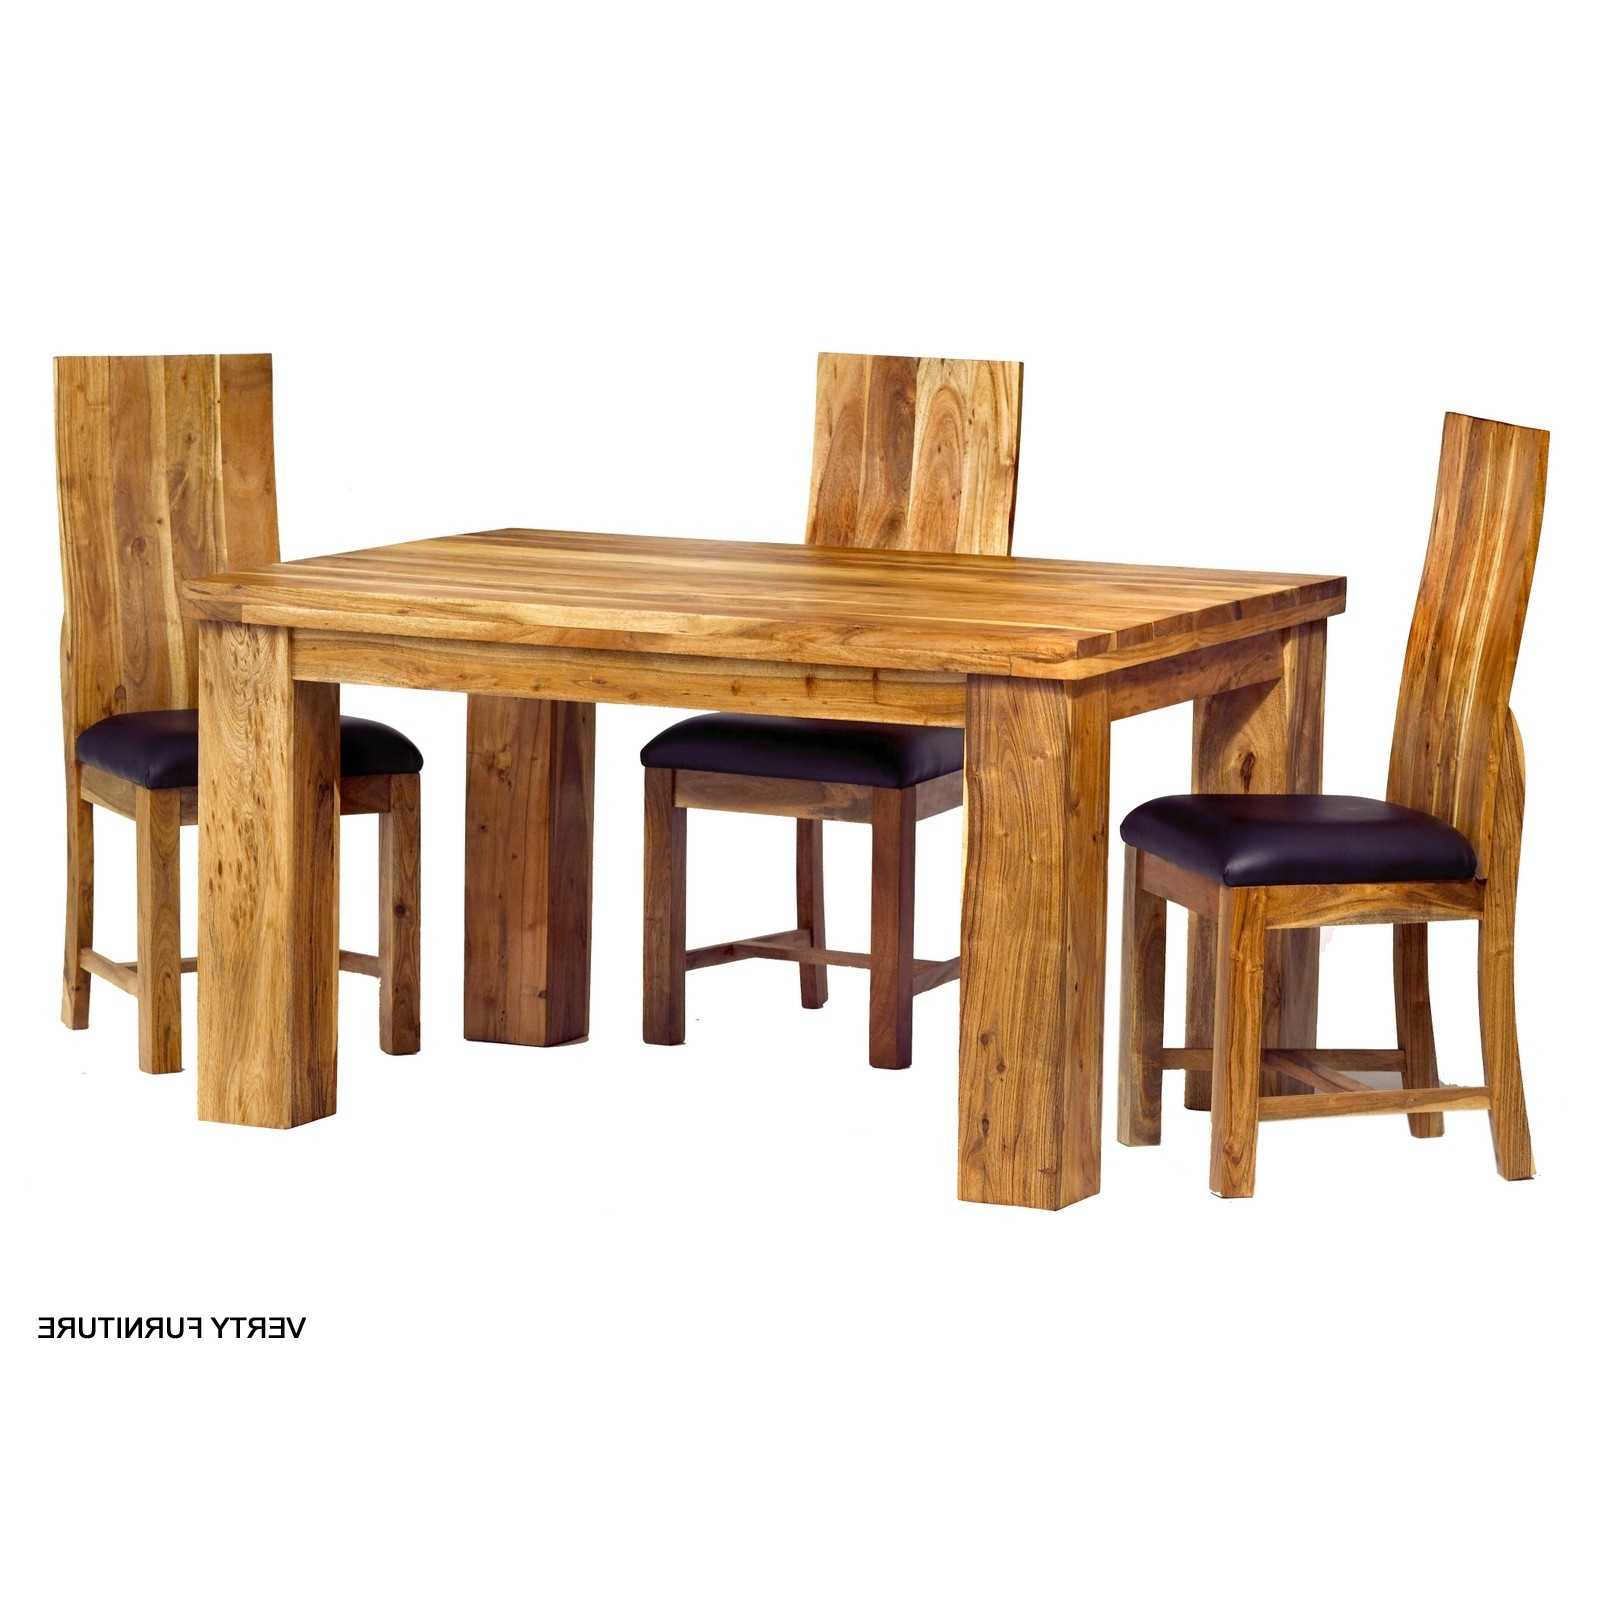 Current Indian Dining Room Furniture Intended For Acacia Dining Table – Small With 4 Chairs – Verty Indian Furniture (Gallery 16 of 25)